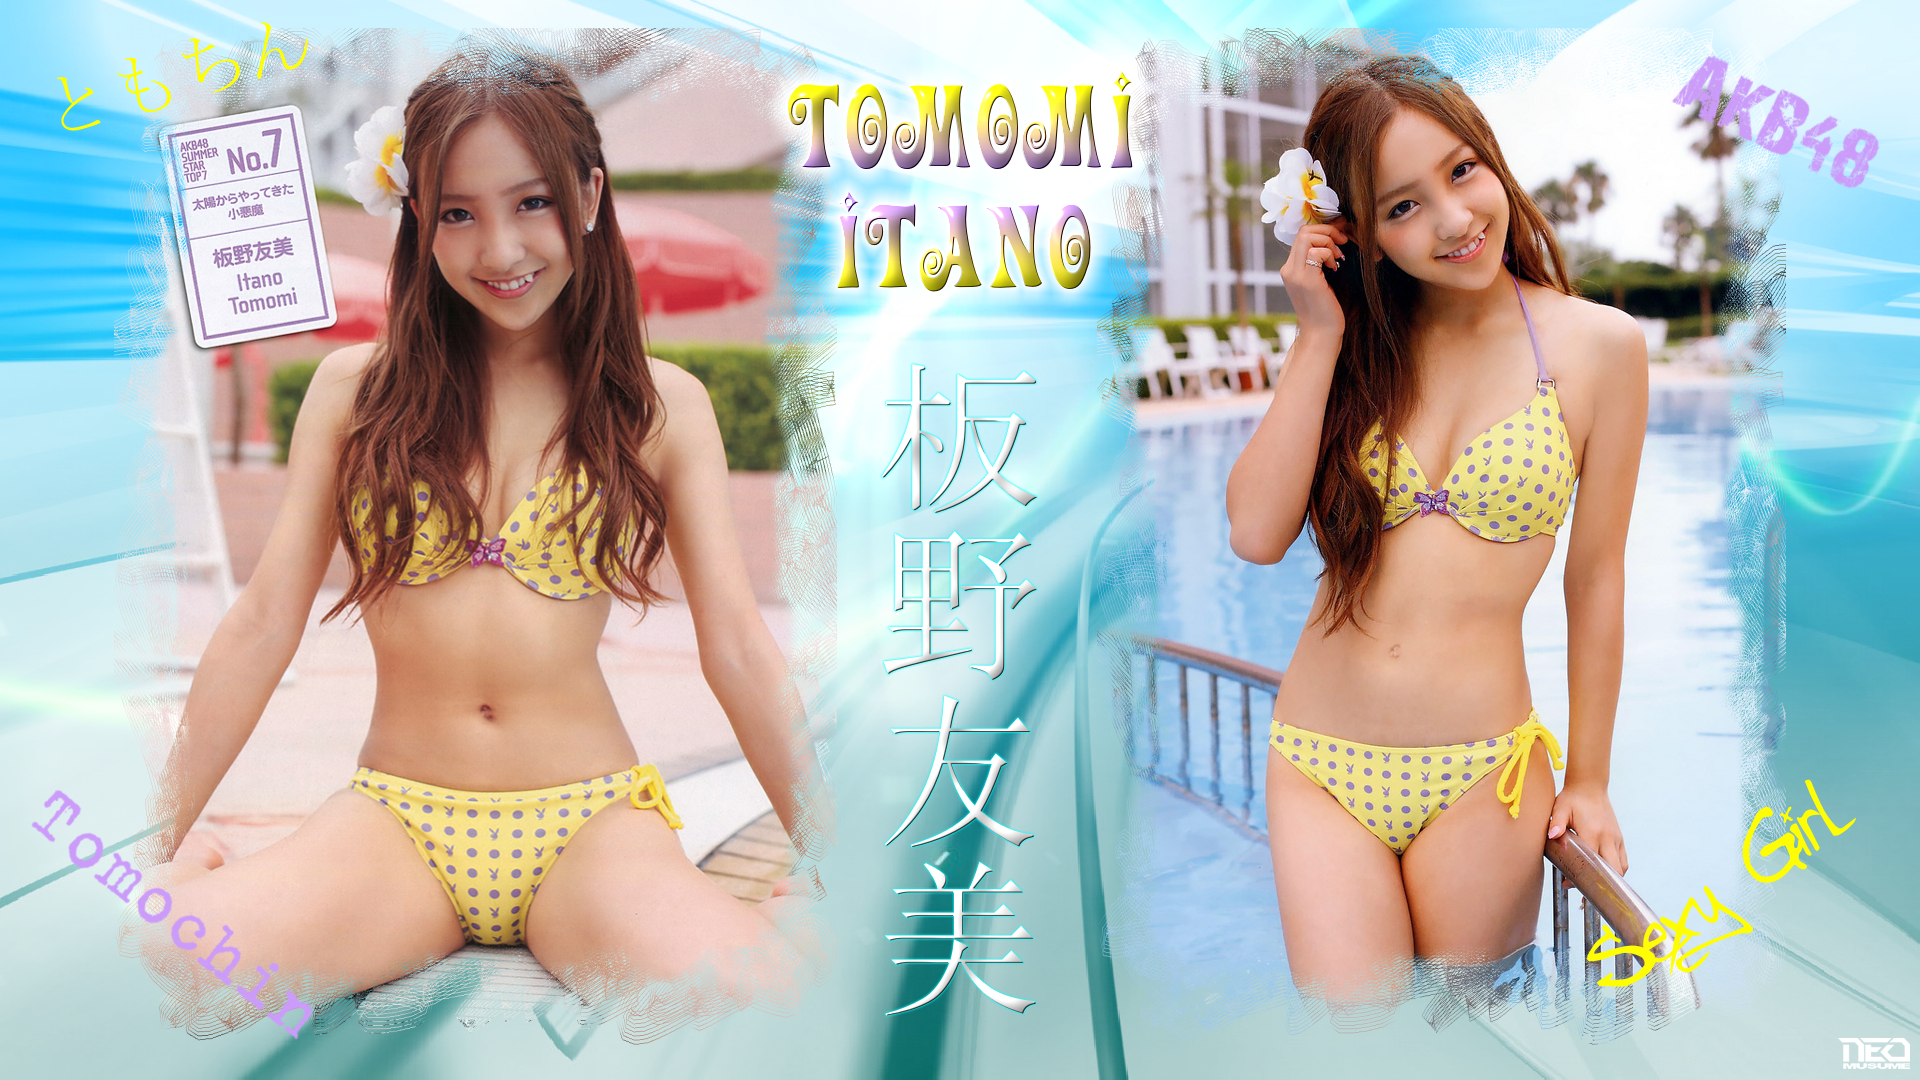 Sexy Tomomi Itano by NEO-Musume